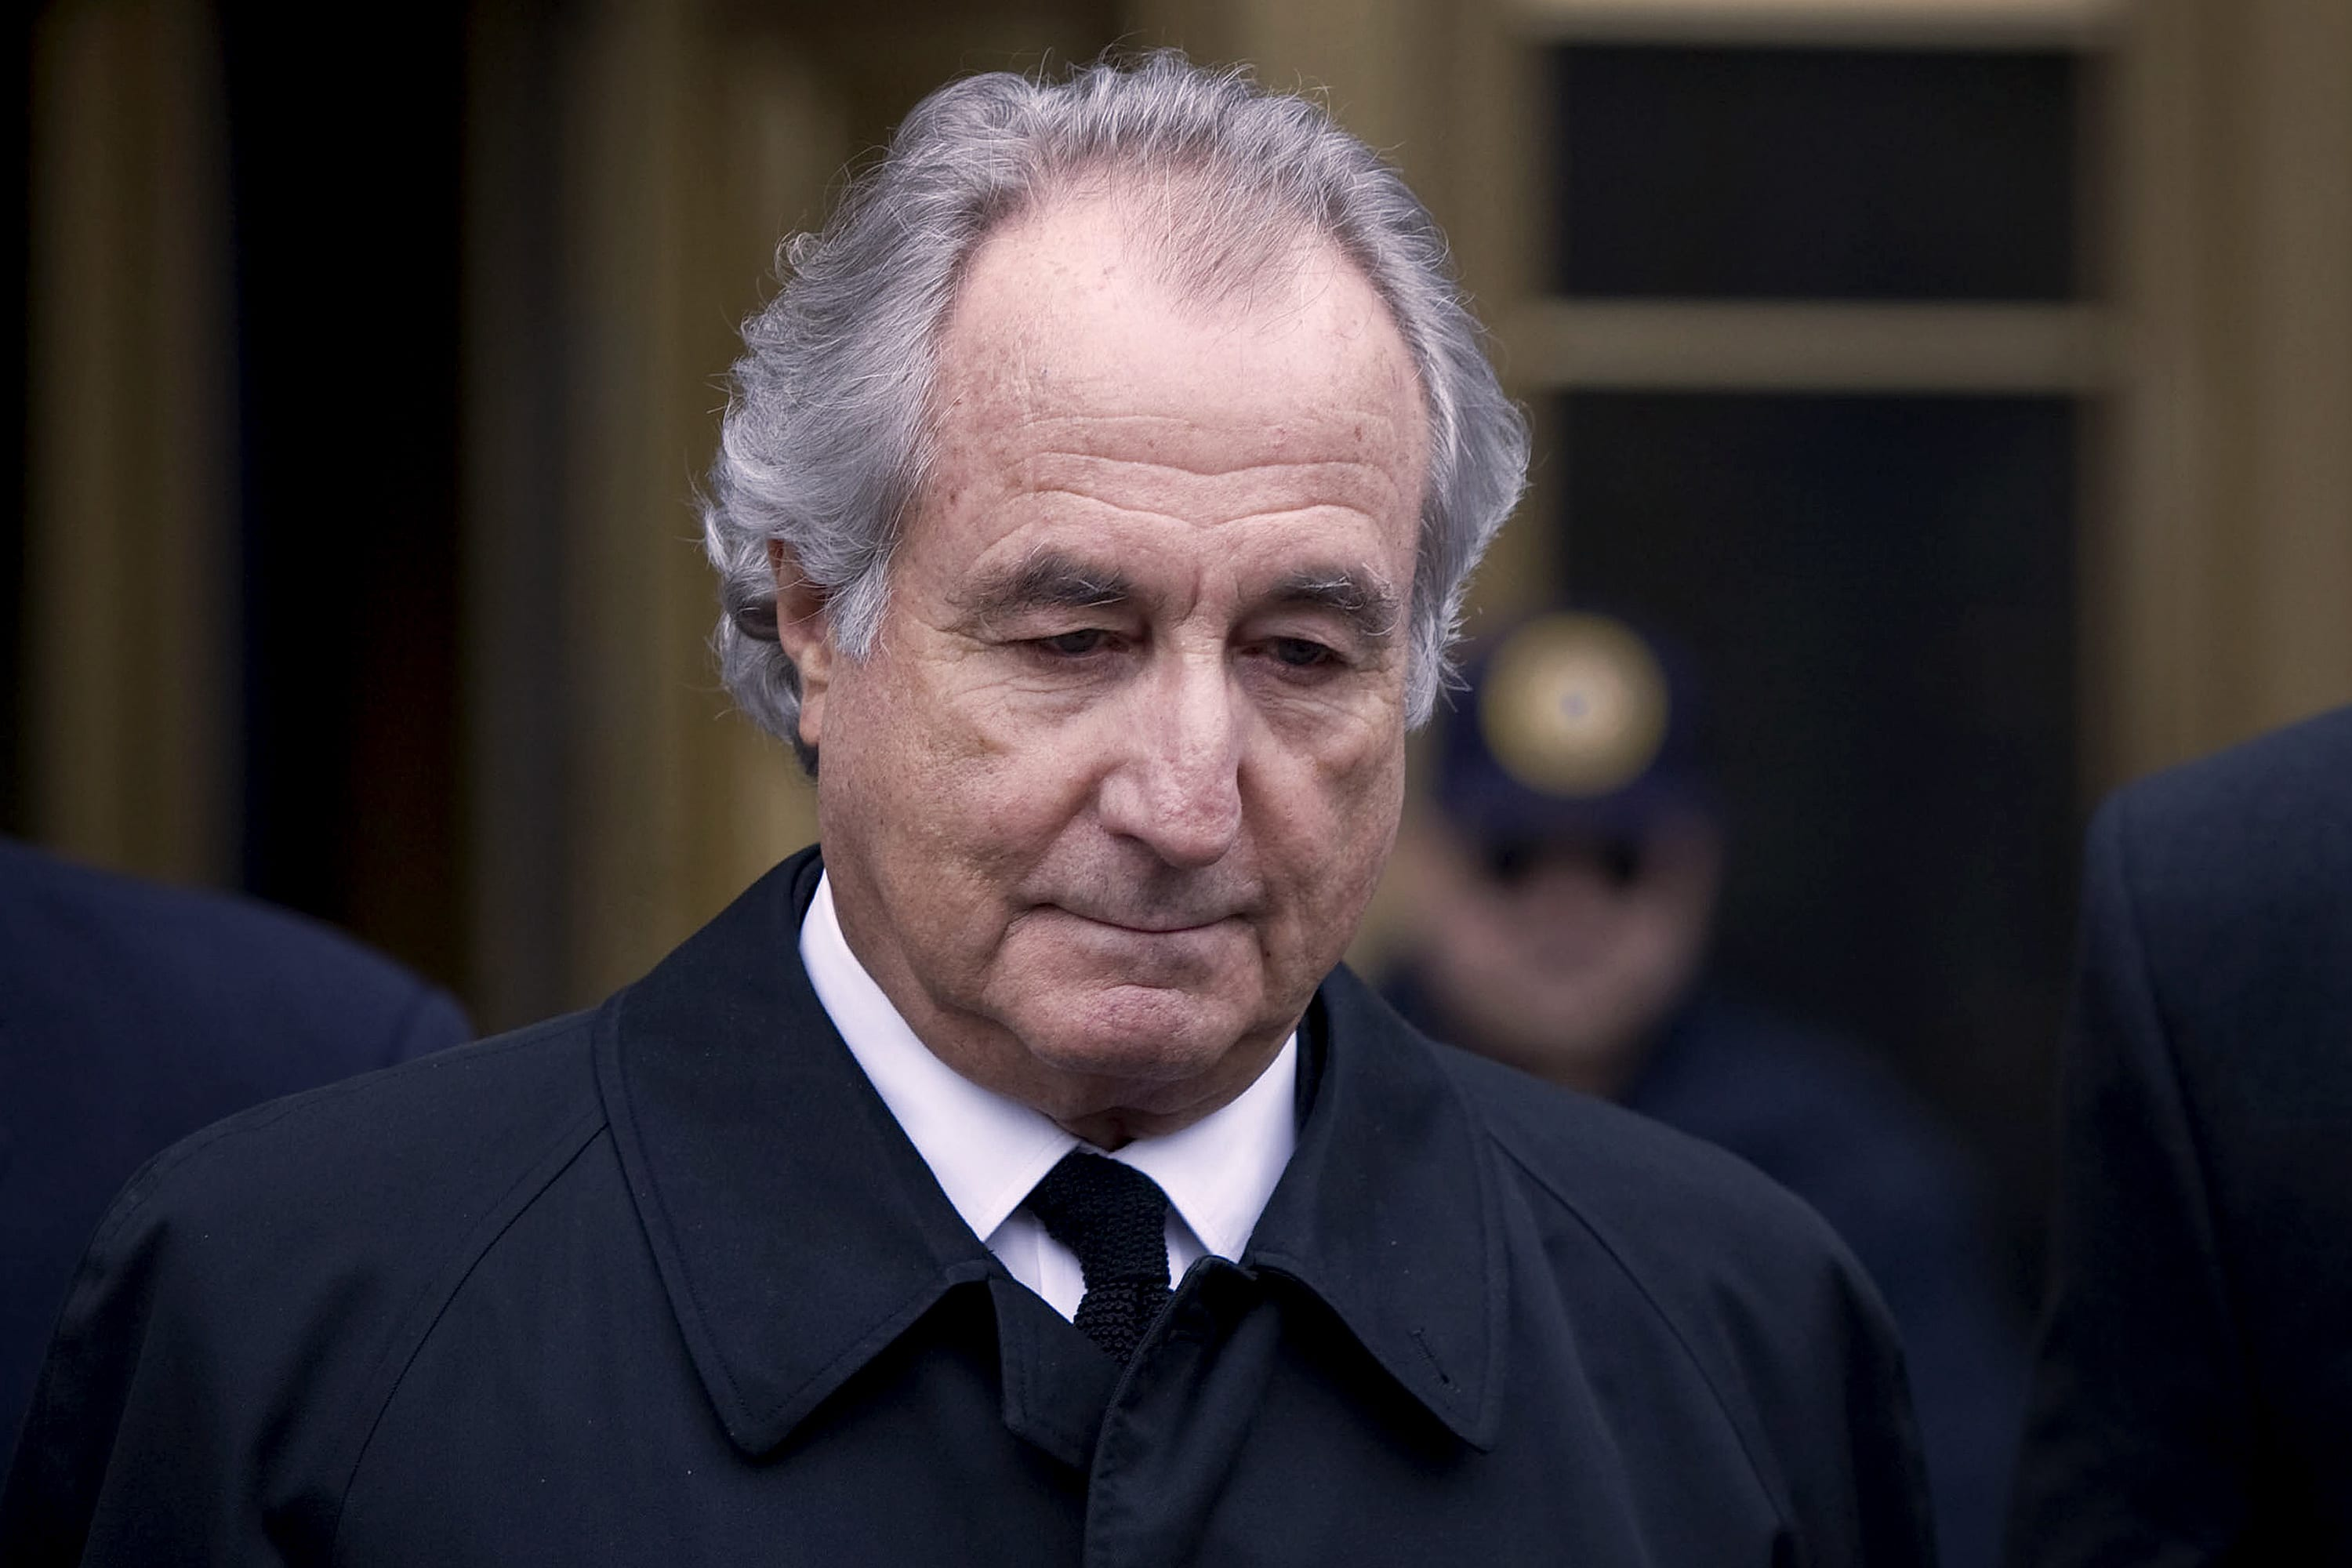 Ponzi schemer Madoff earned $710 for almost 3,000 hours of prison work, got 'not very dependable' review